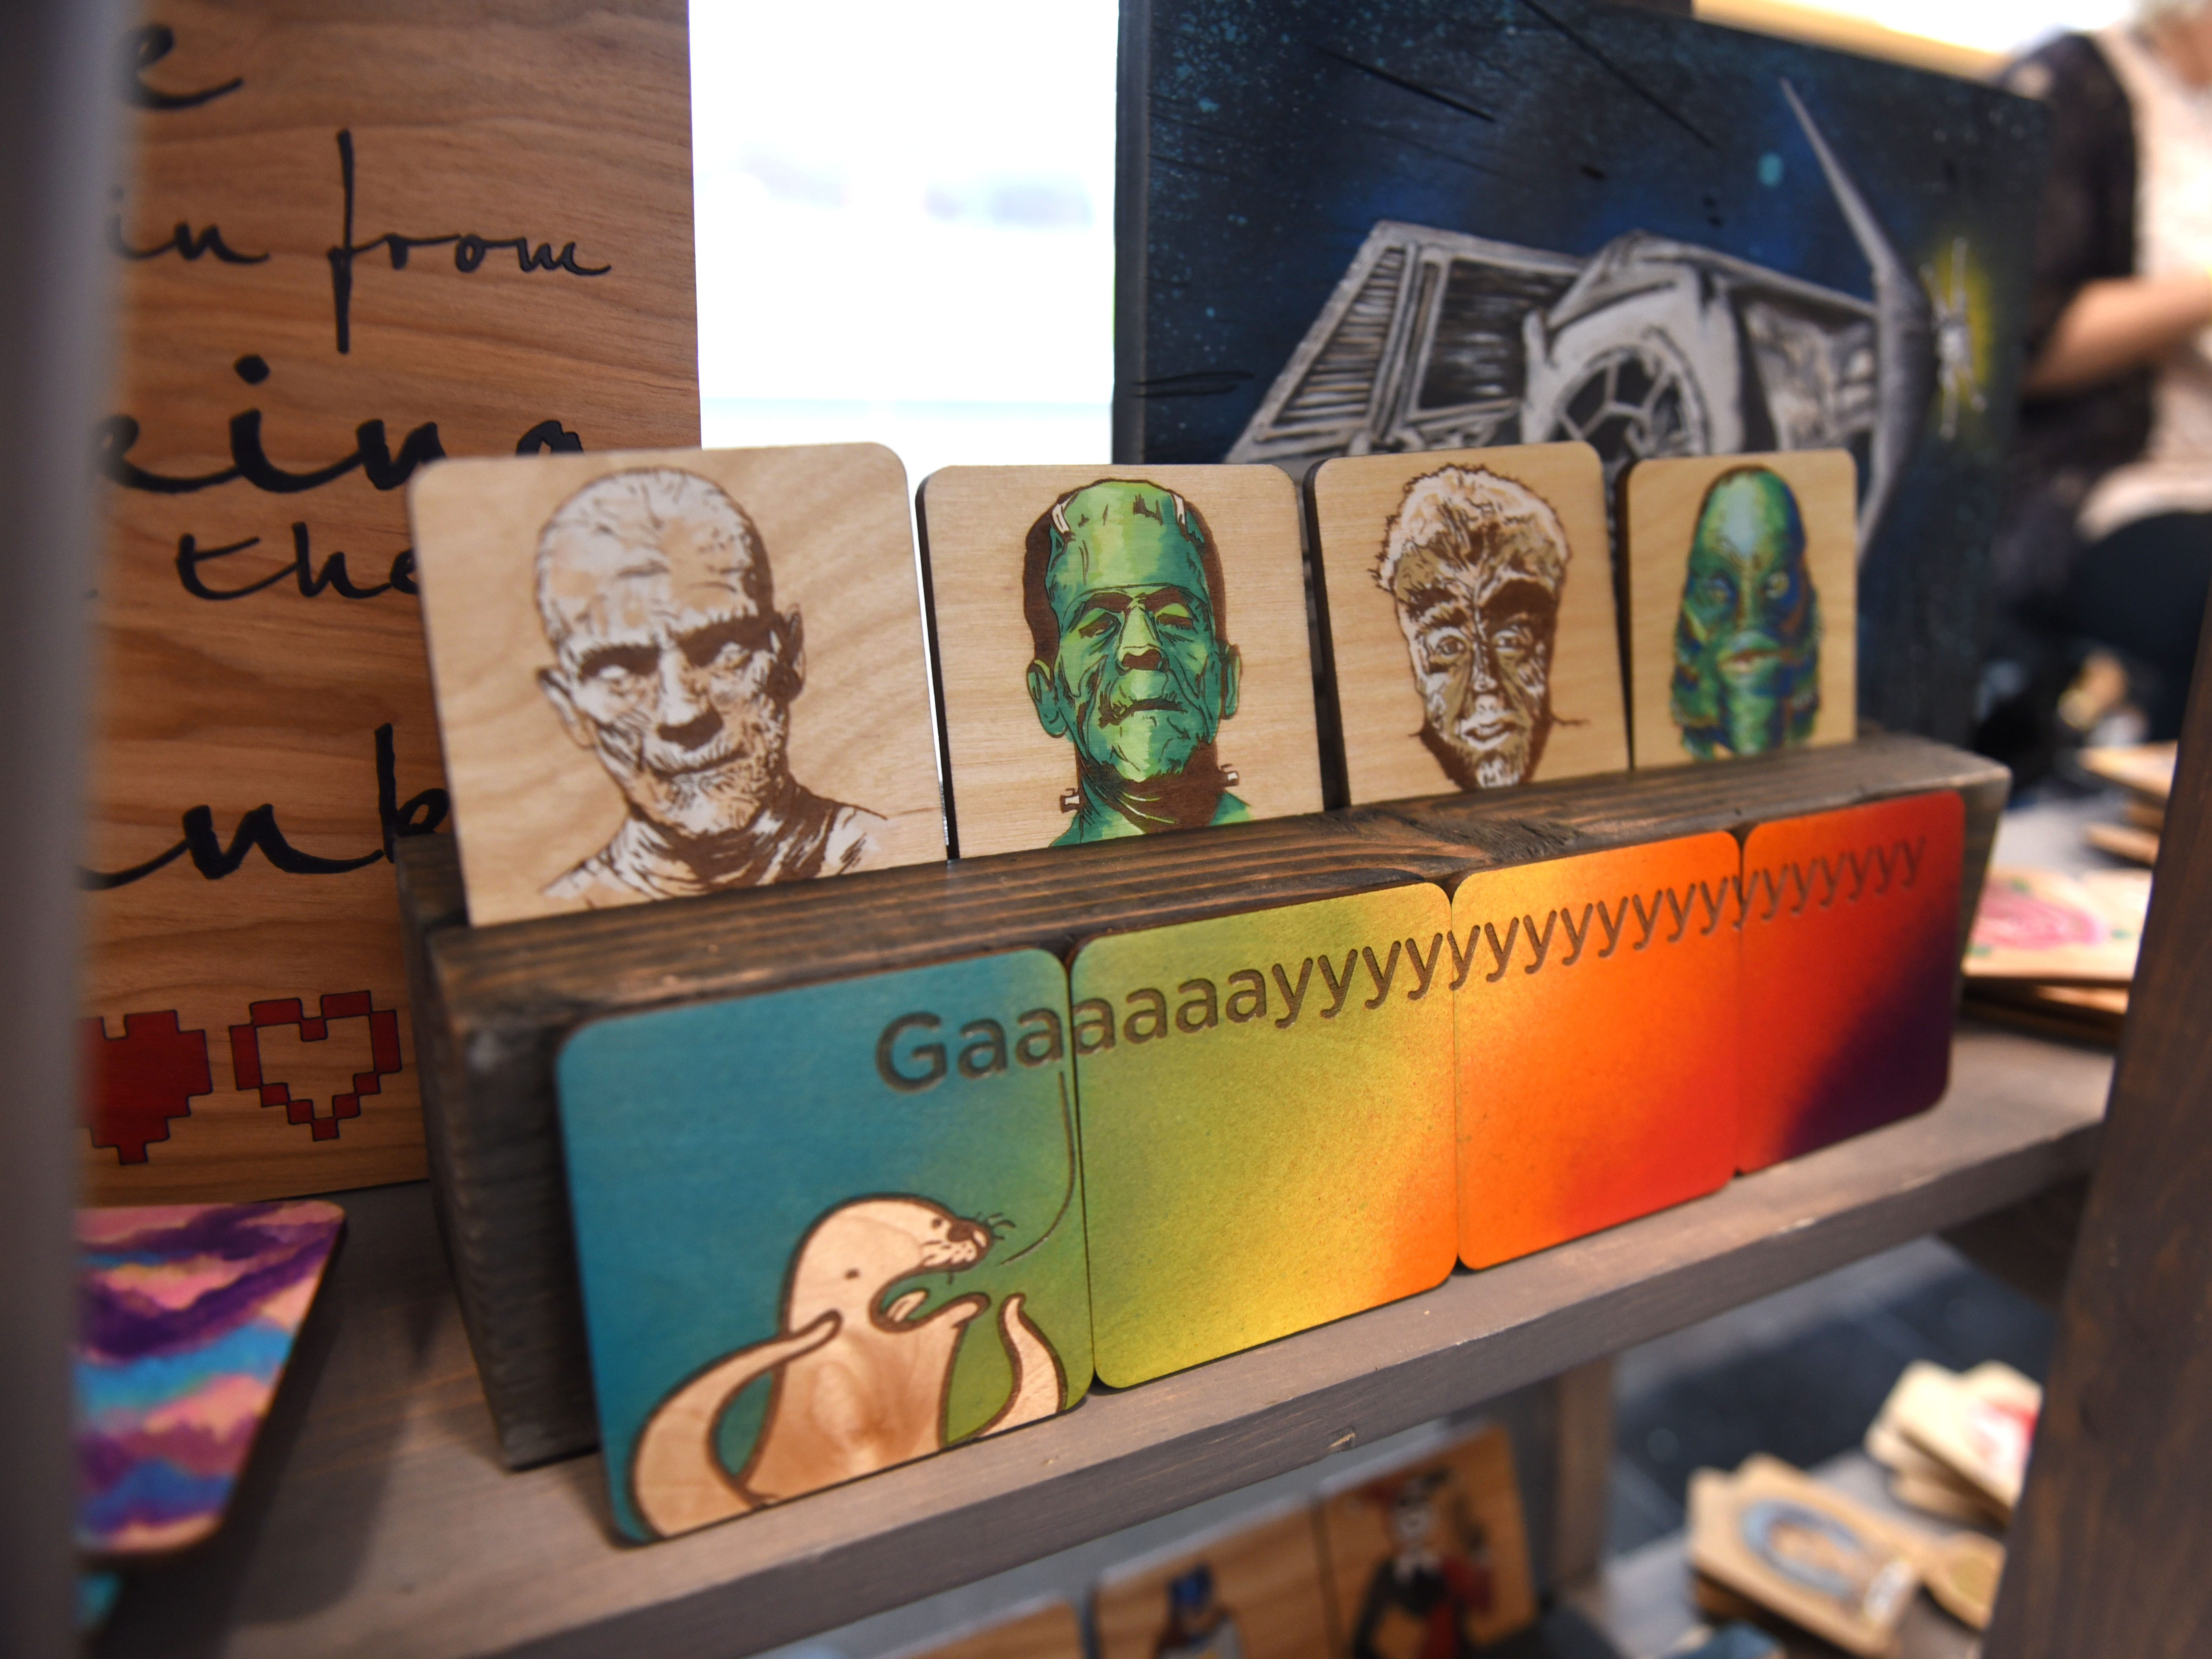 The laser engraved and hand painted coasters by artist Jessica Rowland